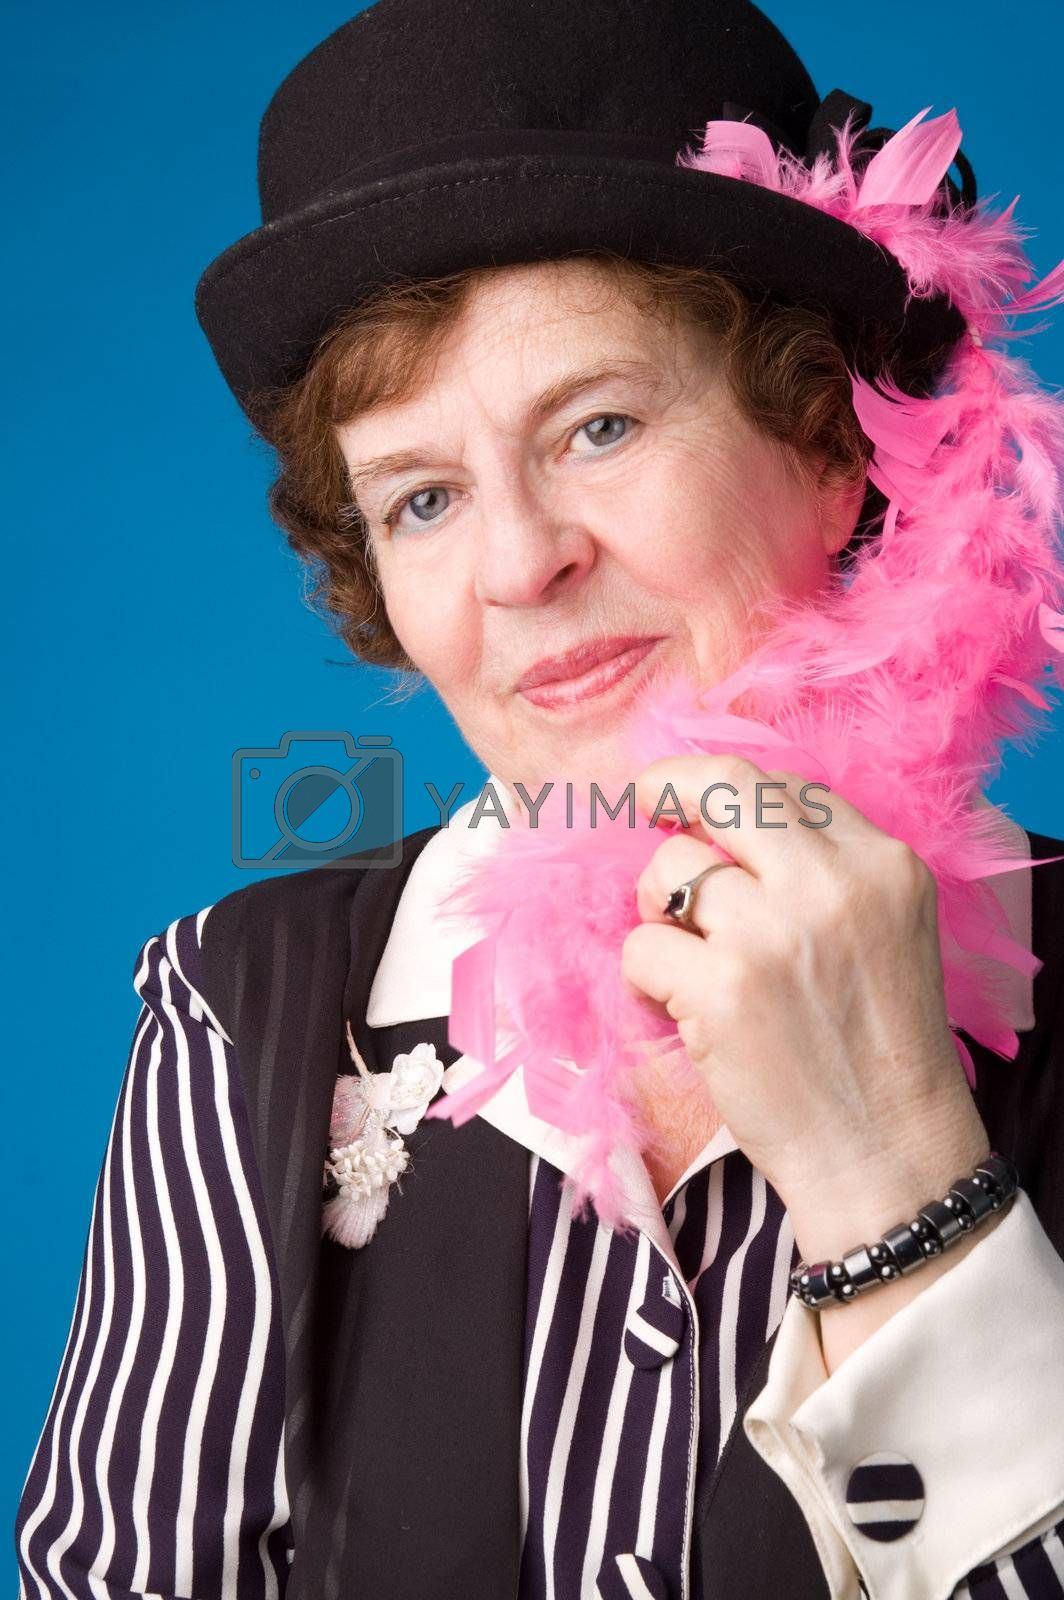 The cheerful elderly woman in black hat on a blue background.